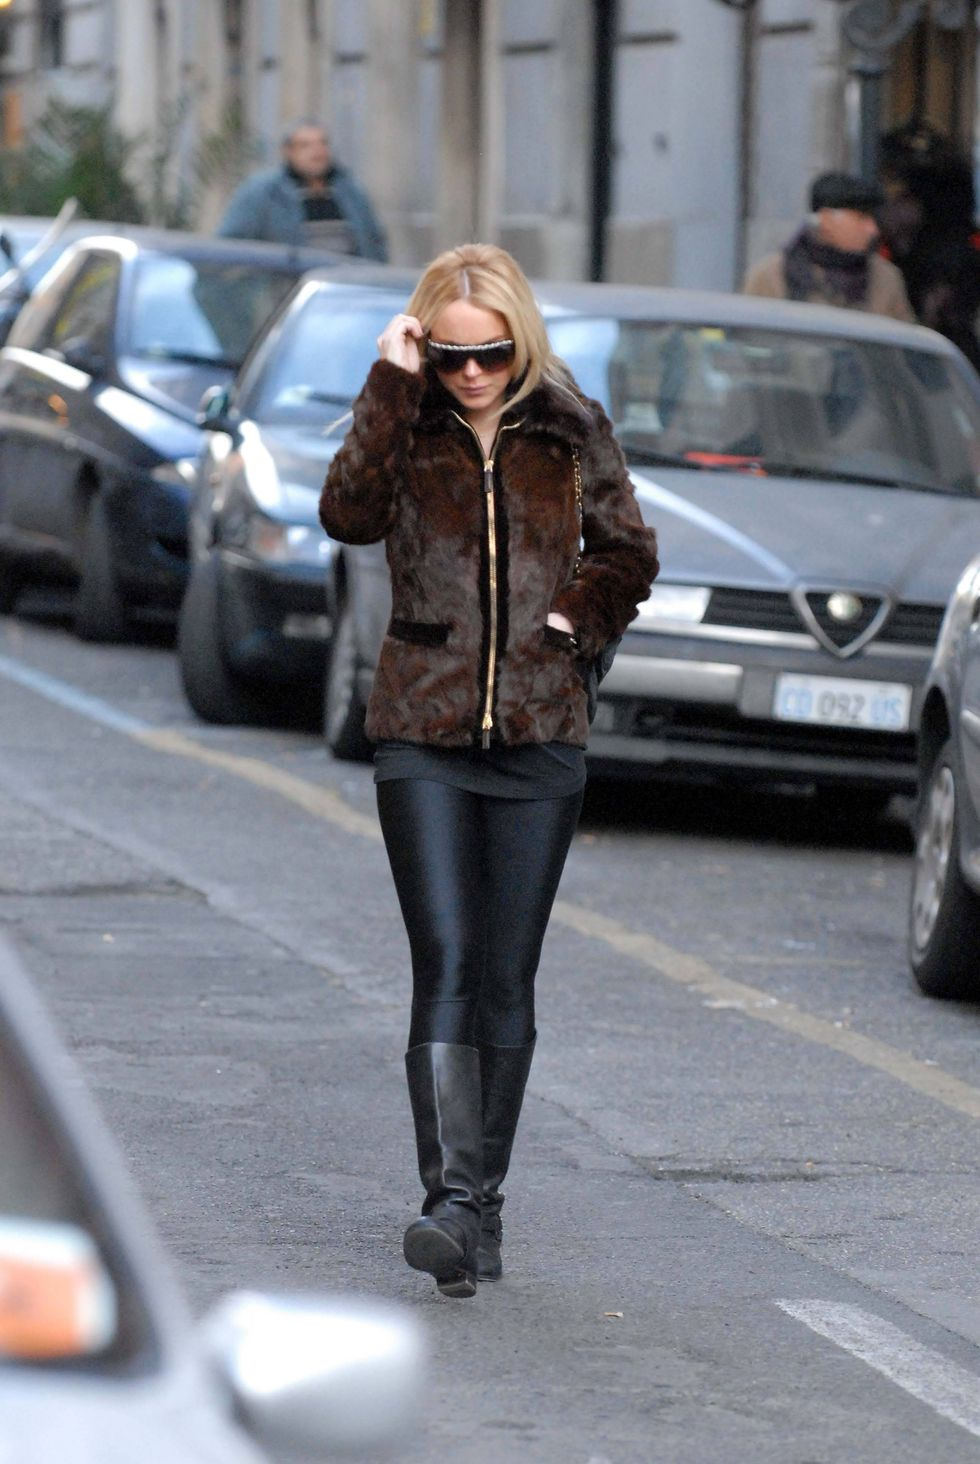 lindsay-lohan-candids-in-rome-01